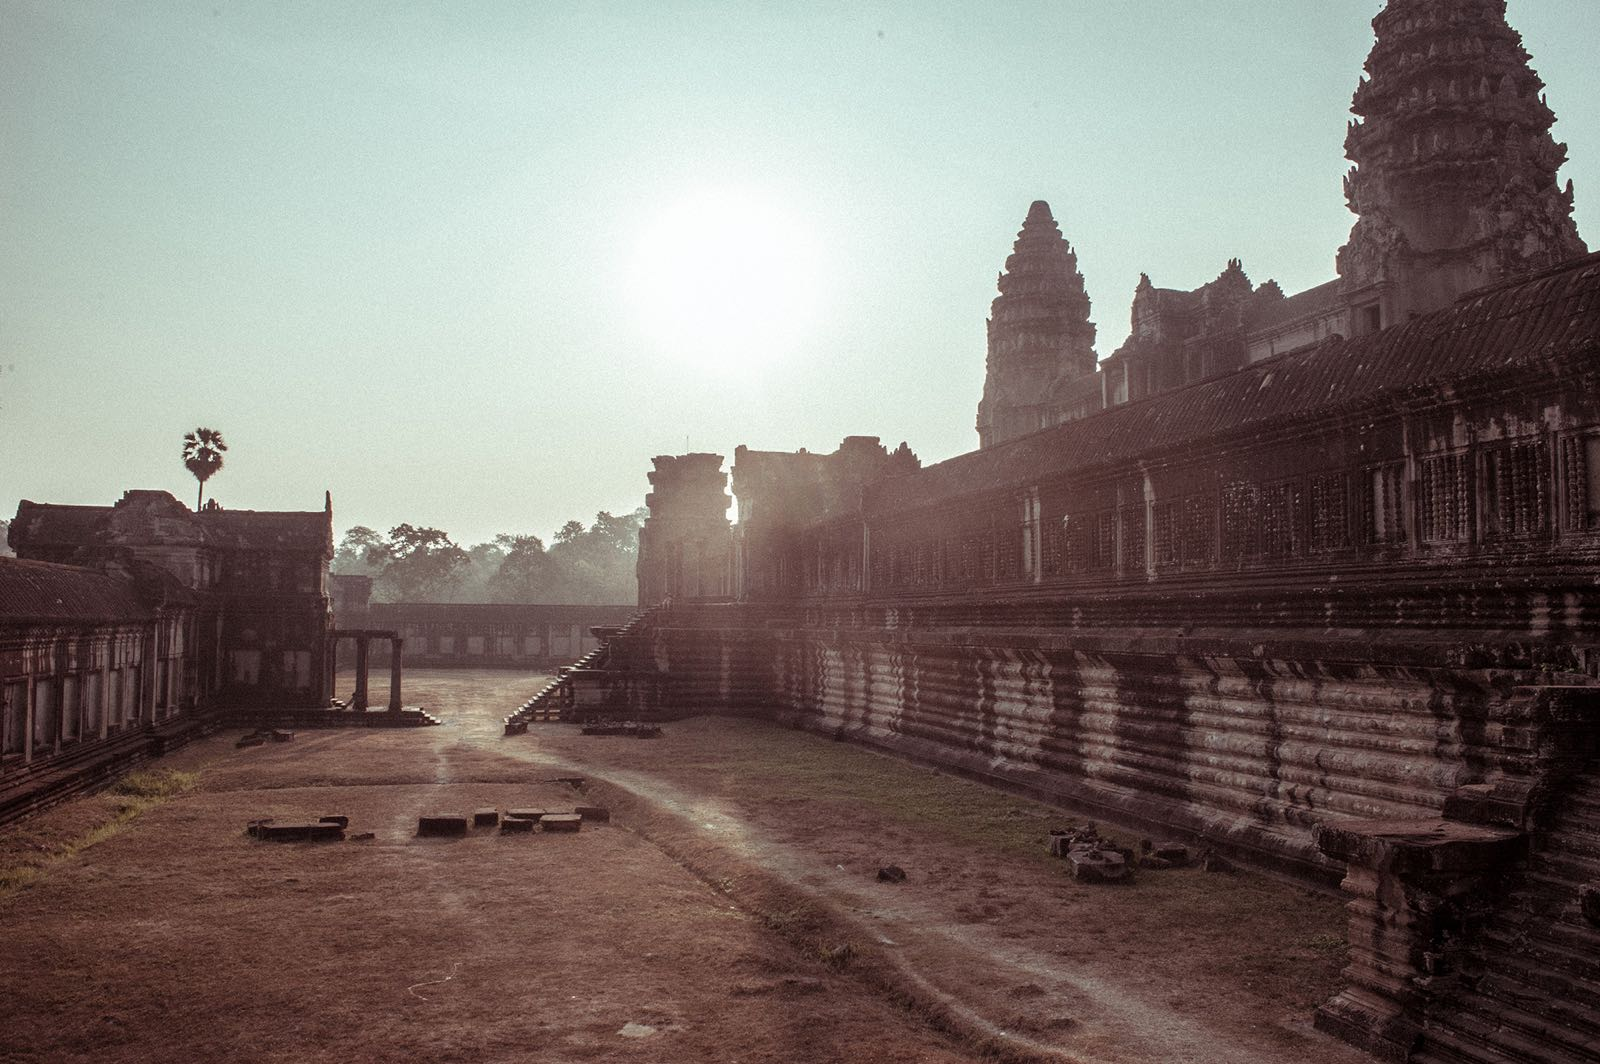 A peaceful morning at the Angkor Temples in Cambodia. With no one around her, it was just her and the antique stones